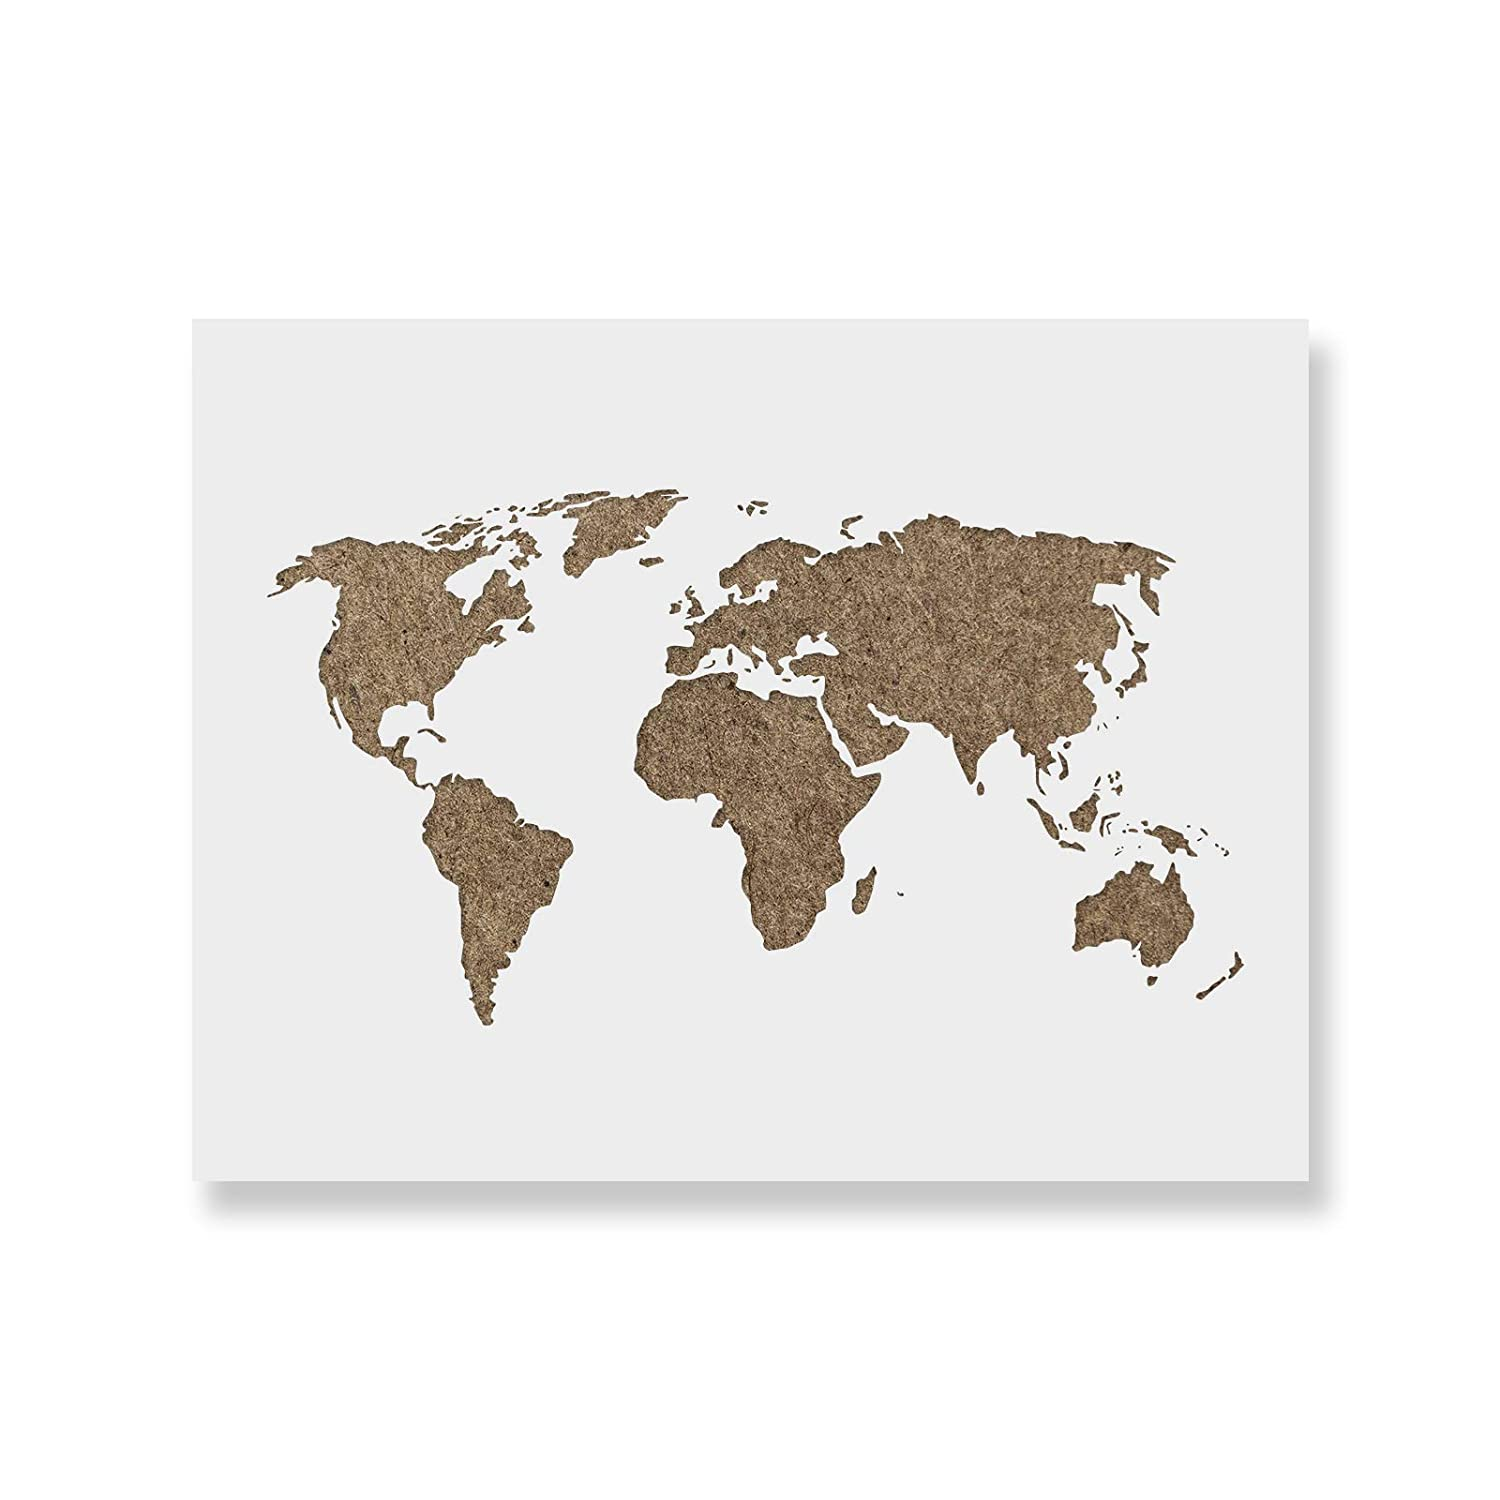 World Map Stencil Template for Walls and Crafts - Reusable Stencils for Painting in Small & Large Sizes Stencil Revolution